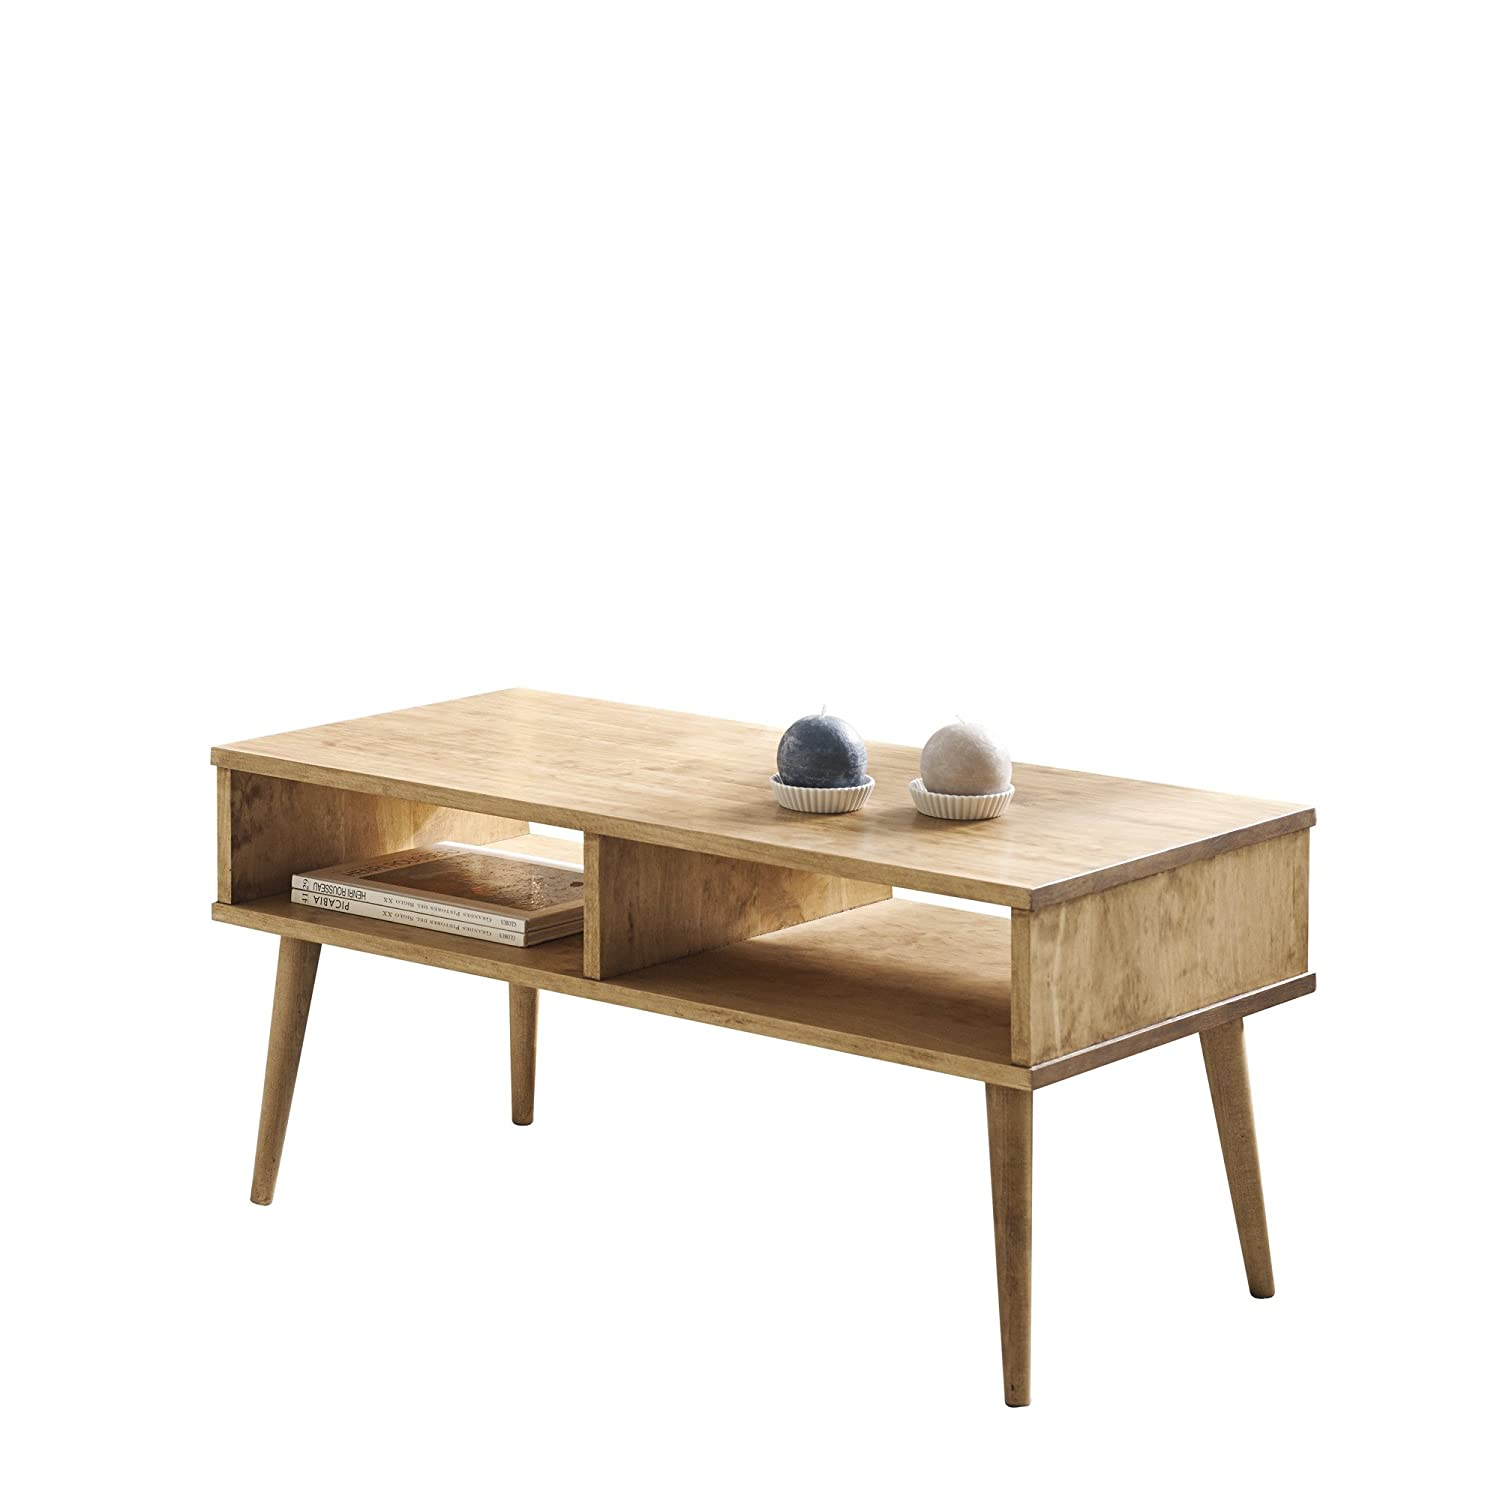 Mesa TV madera natural fabricacion artesanal vintagehttps://amzn.to/2BoL6vS